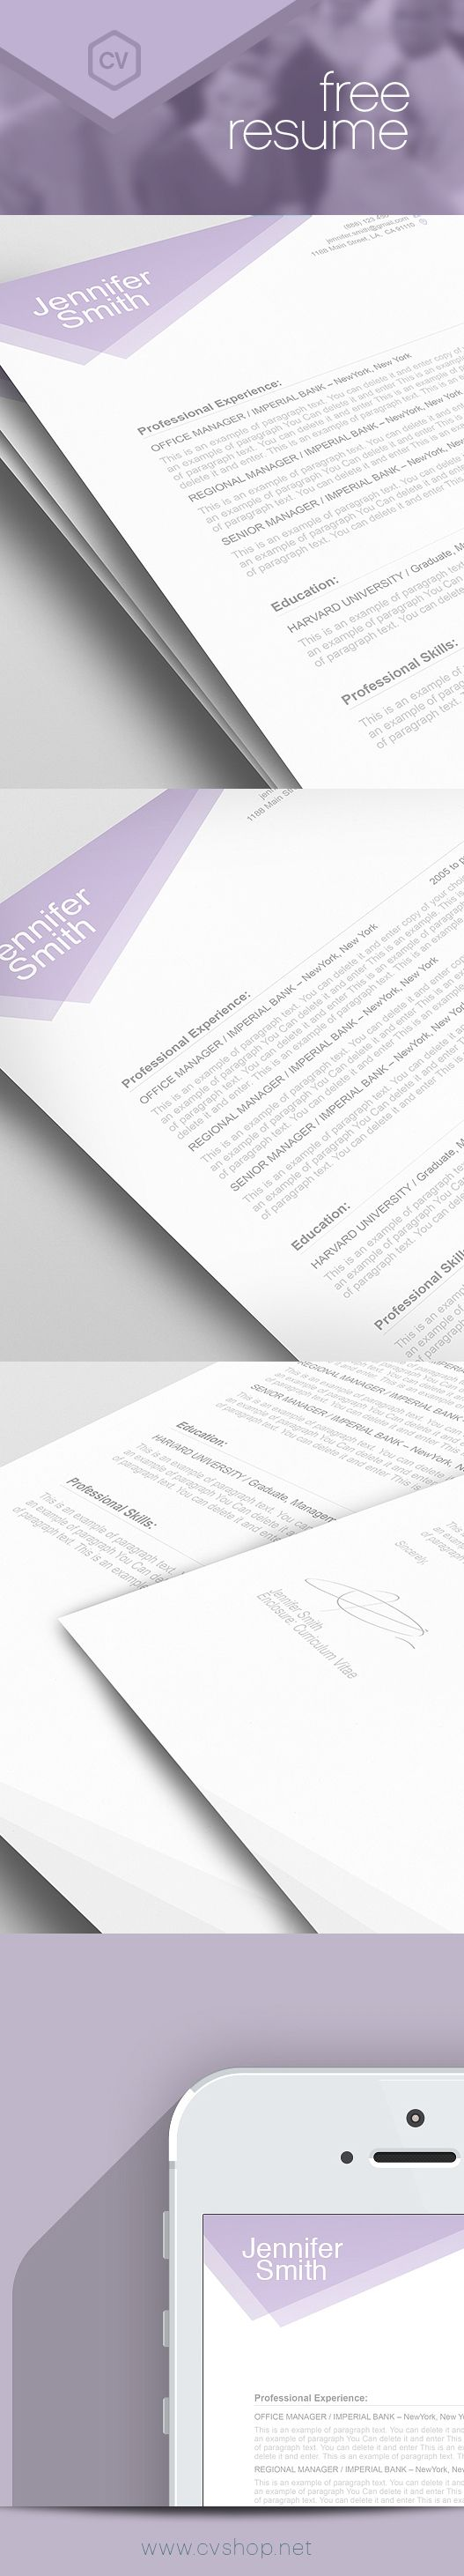 17 best images about resume templates a well resume template 100030 ⎜ resume templates cvshop net cvshop